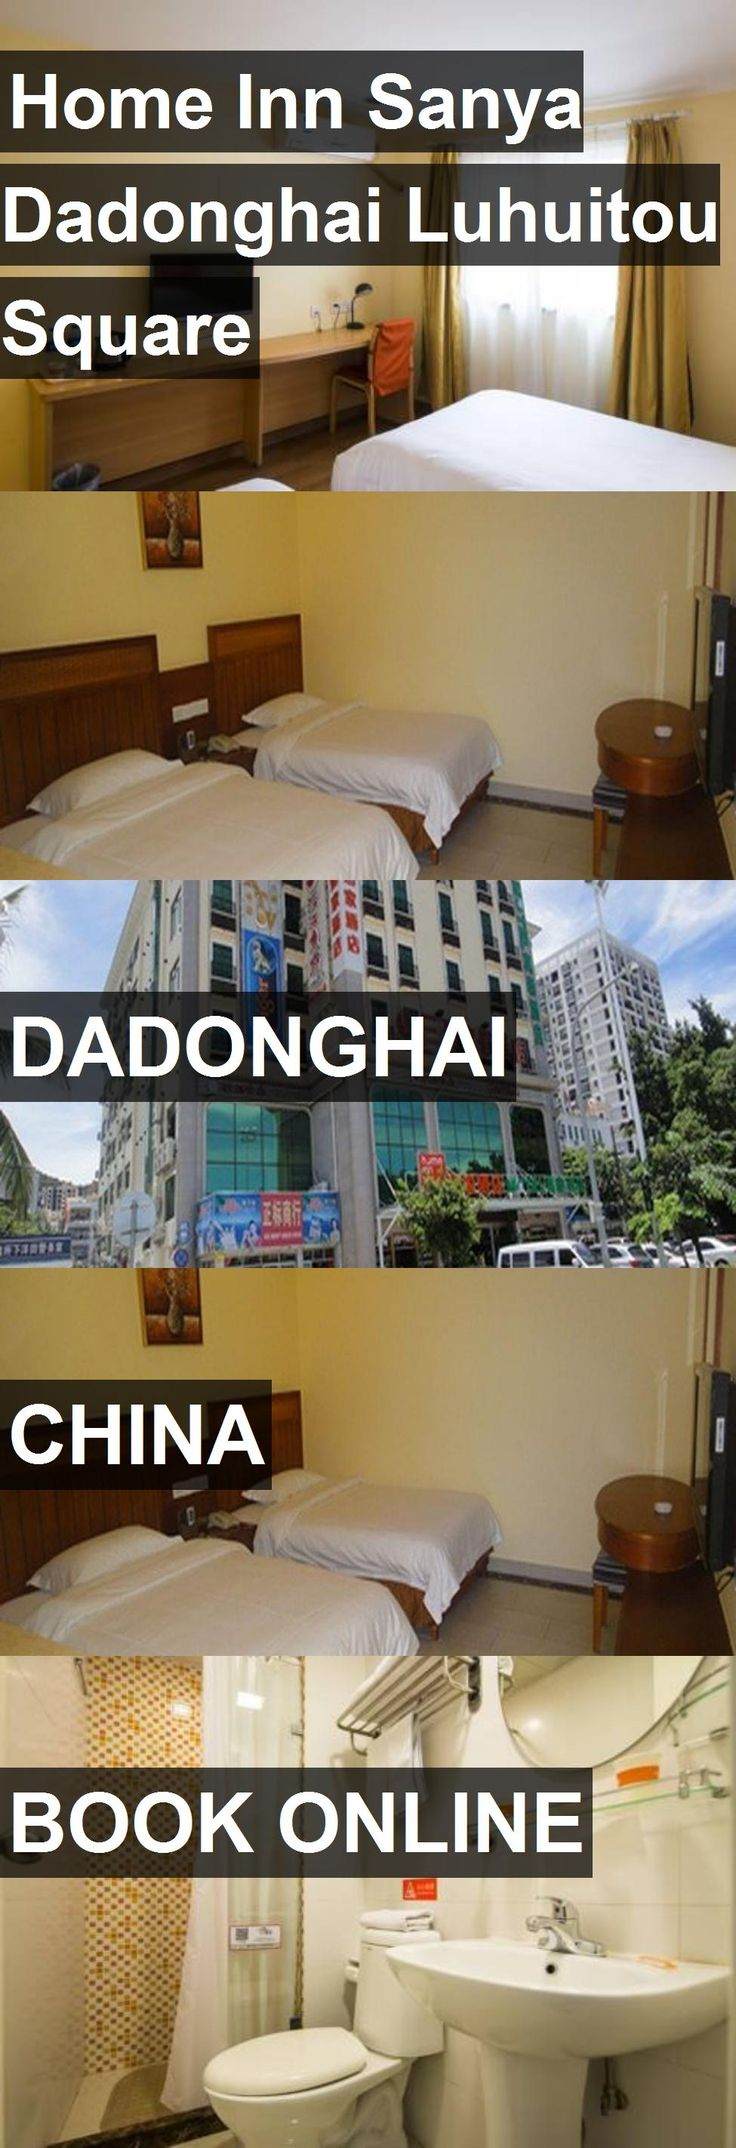 Hotel Home Inn Sanya Dadonghai Luhuitou Square in Dadonghai, China. For more information, photos, reviews and best prices please follow the link. #China #Dadonghai #travel #vacation #hotel